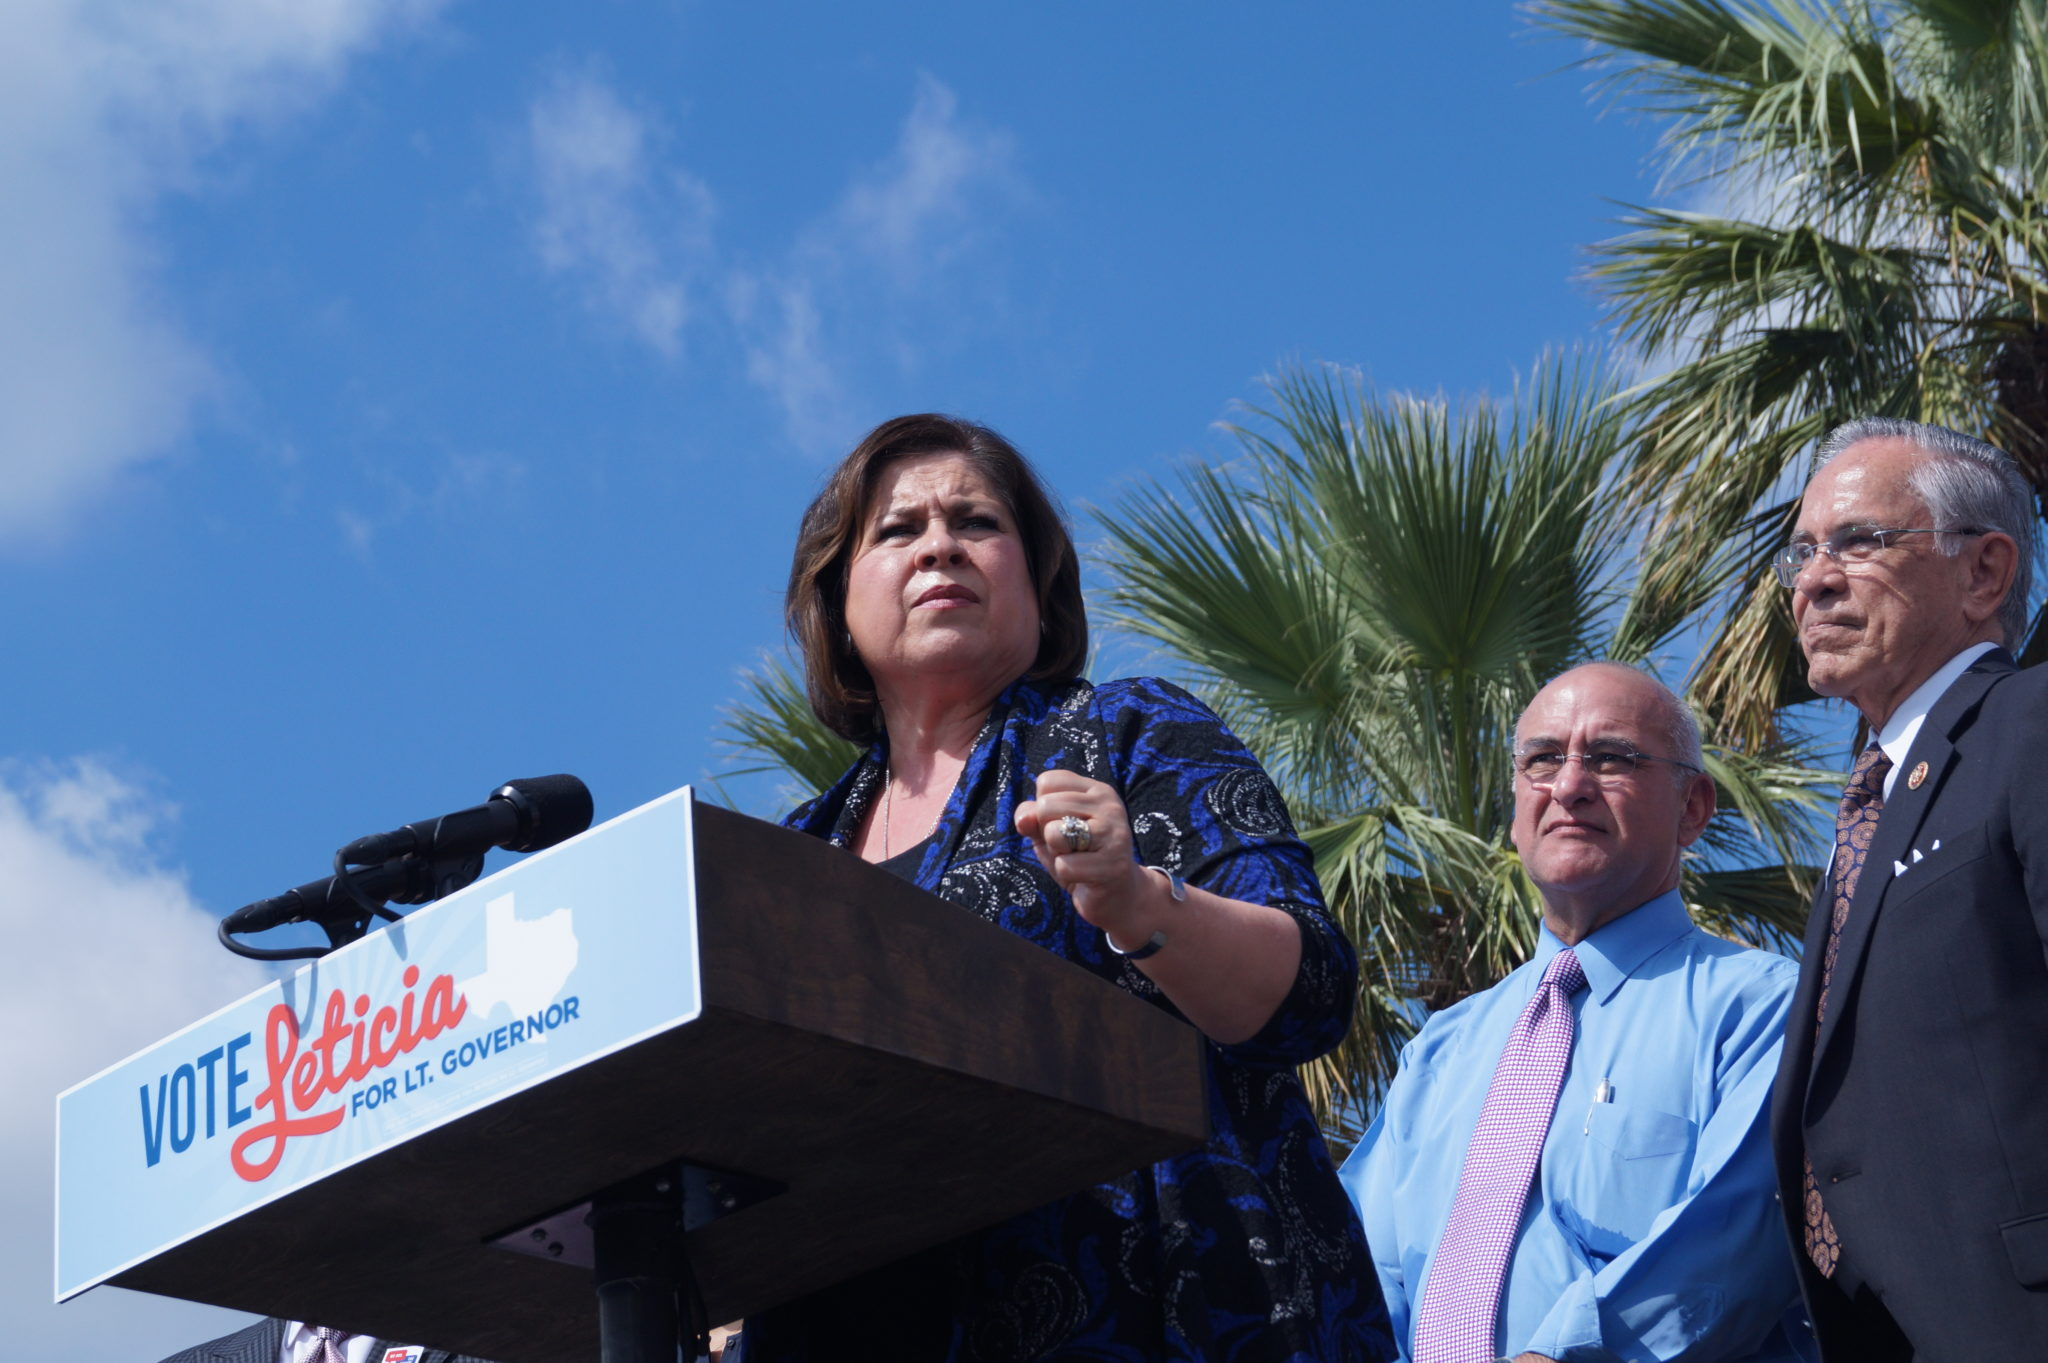 Leticia Van de Putte addresses a crowd of students at the University of Texas-Pan American, October 23, 2014.